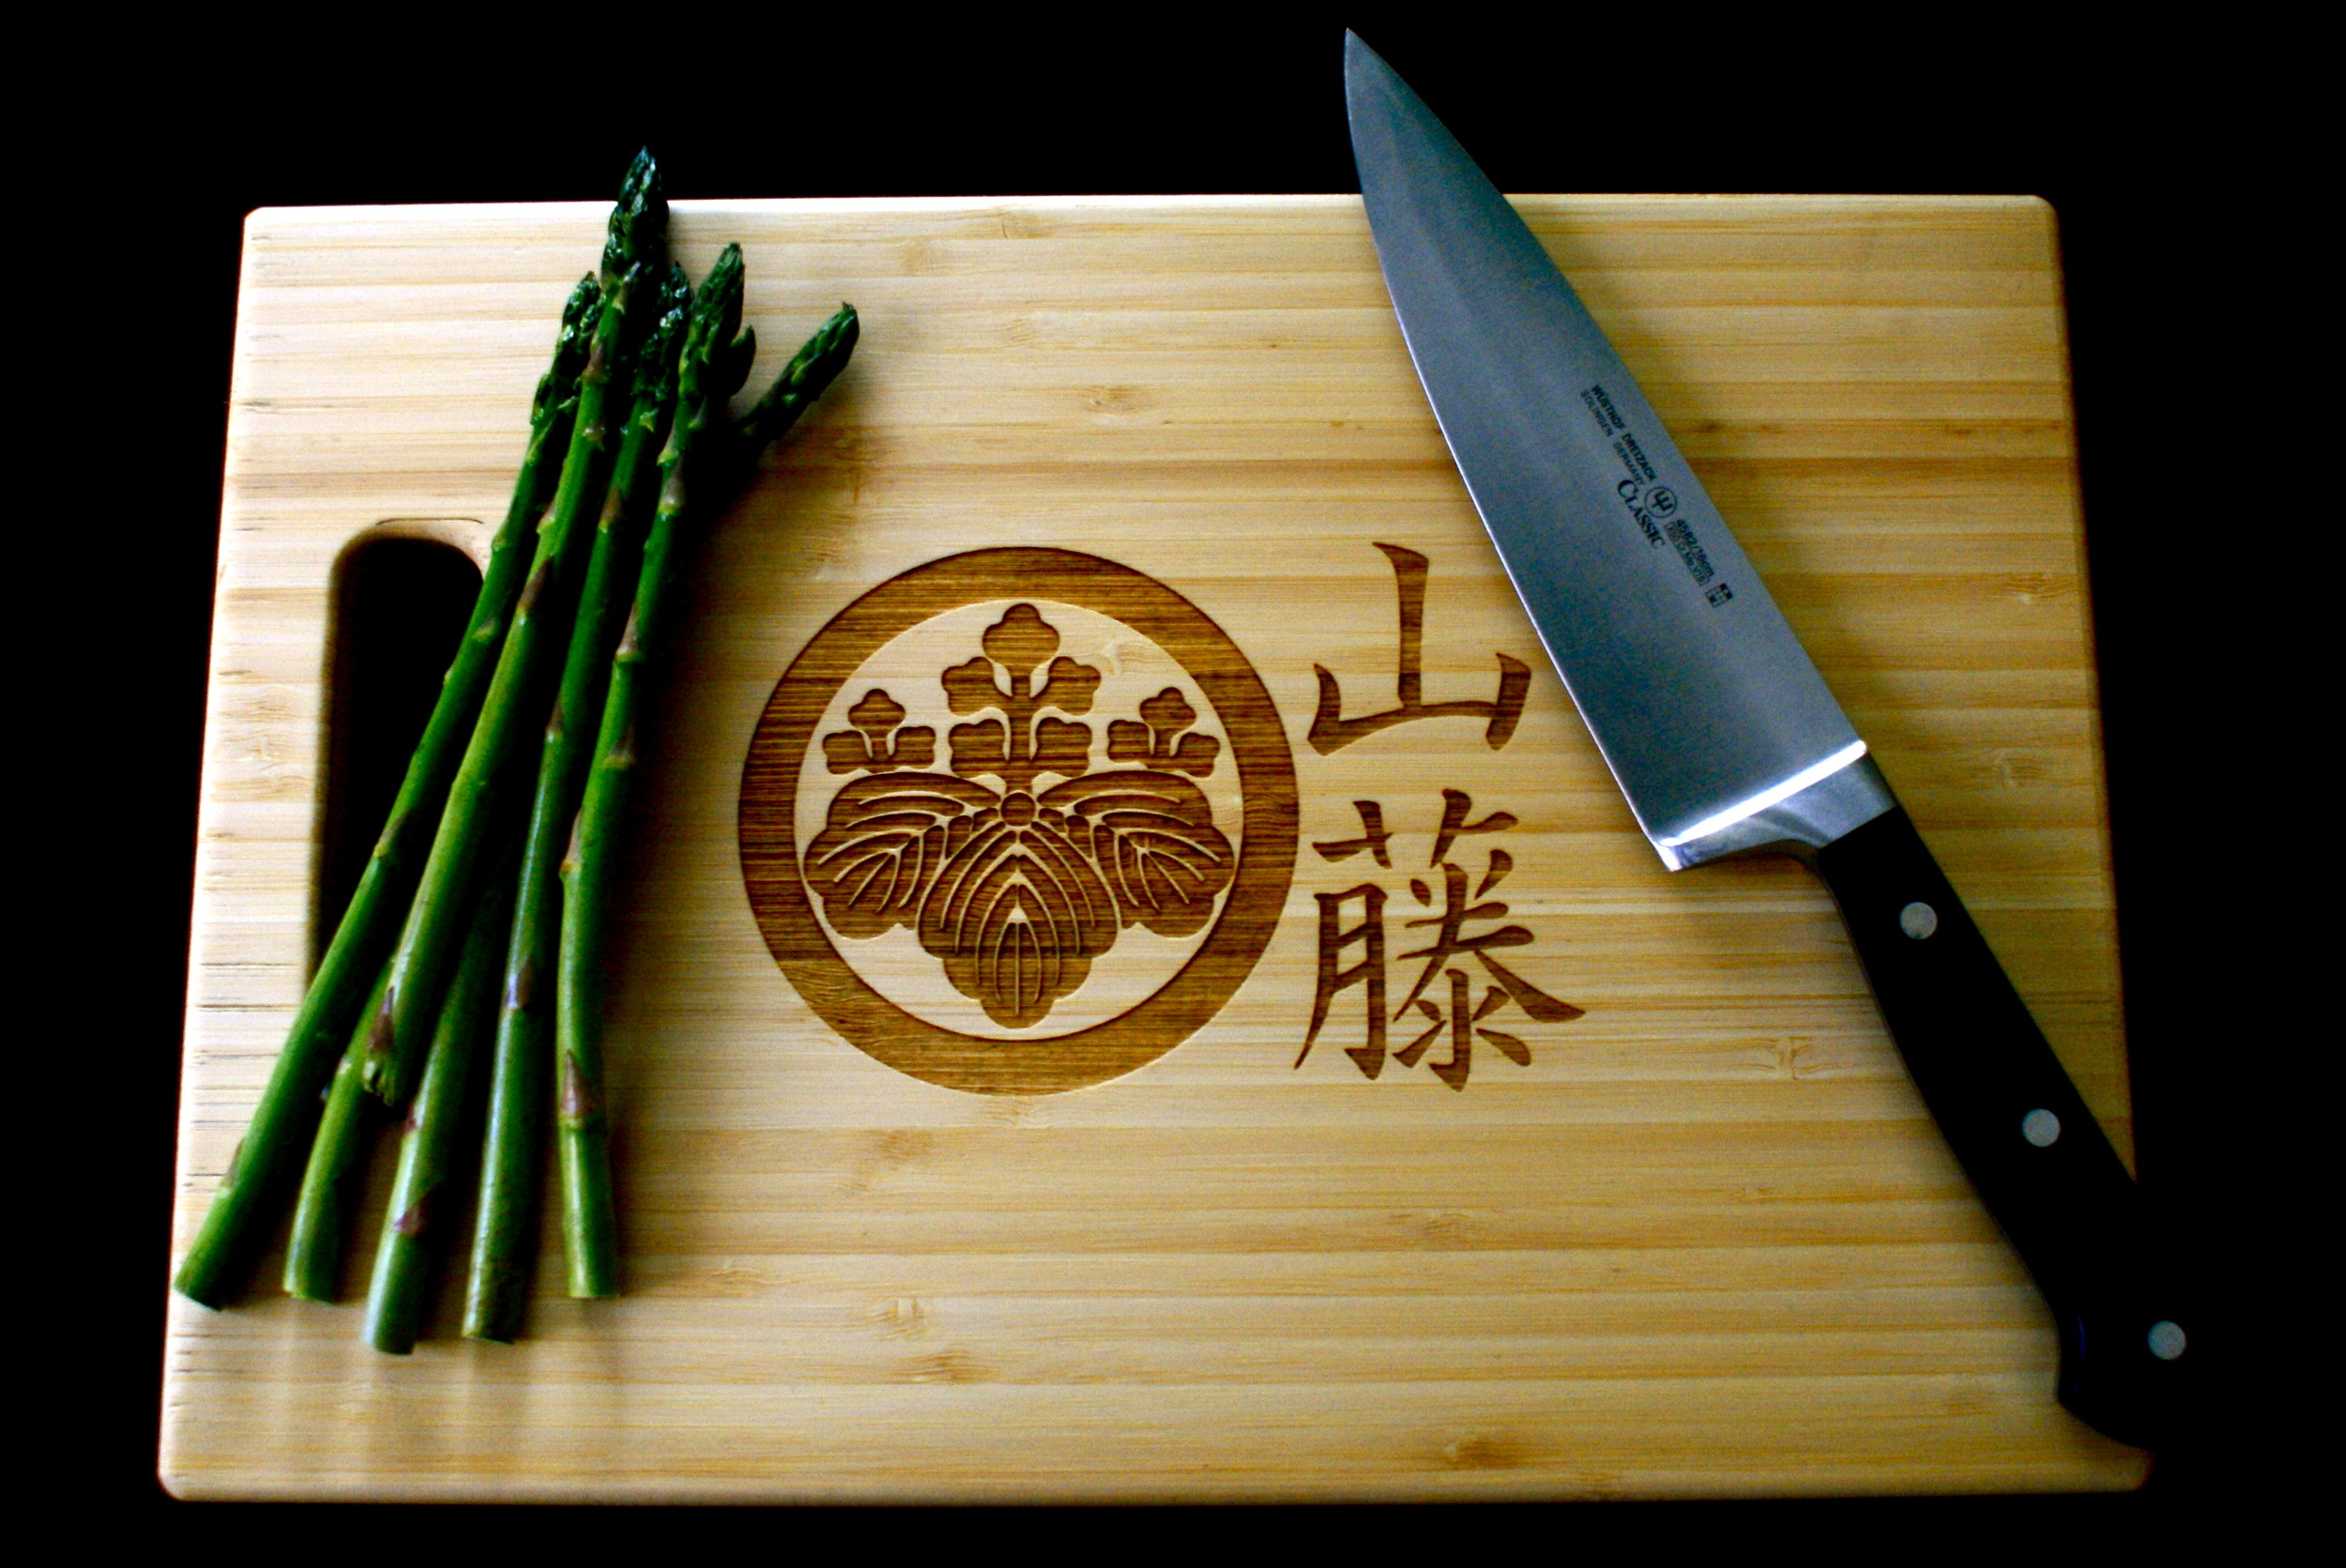 A Family Crest engraved onto a bamboo cutting board.